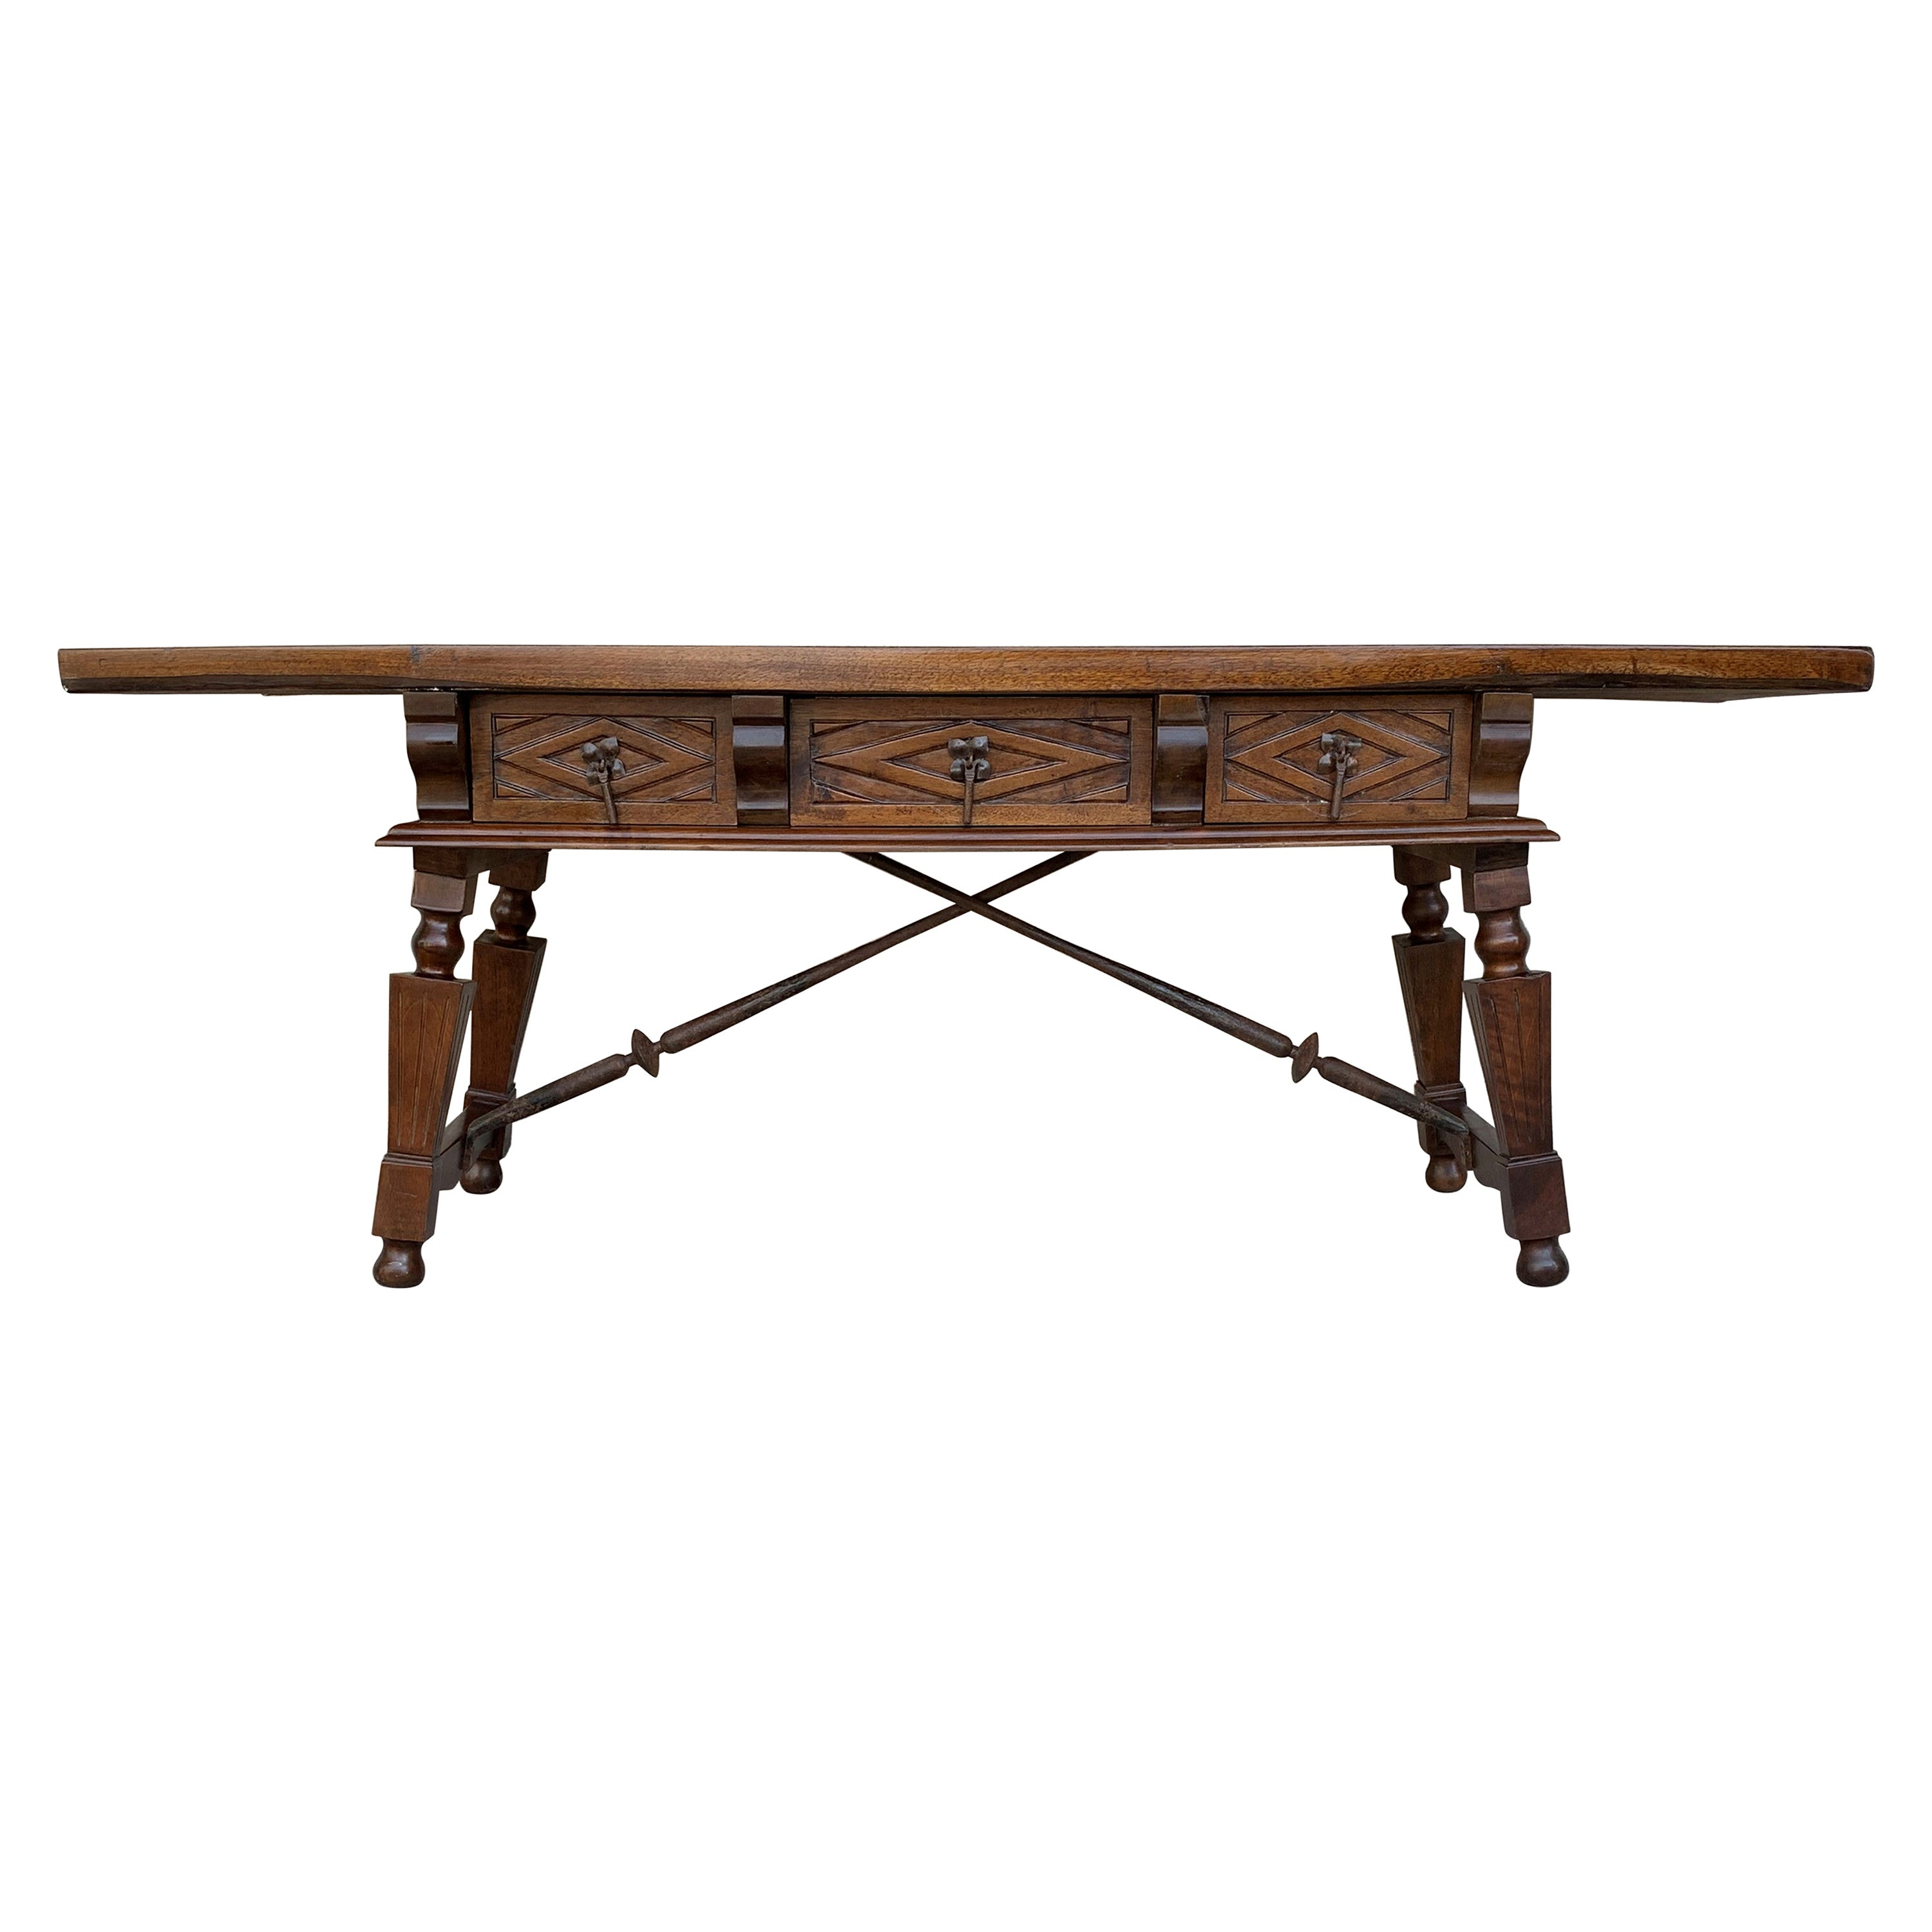 Spanish Bench or Low Console Table with Carved Drawers and Iron Stretcher